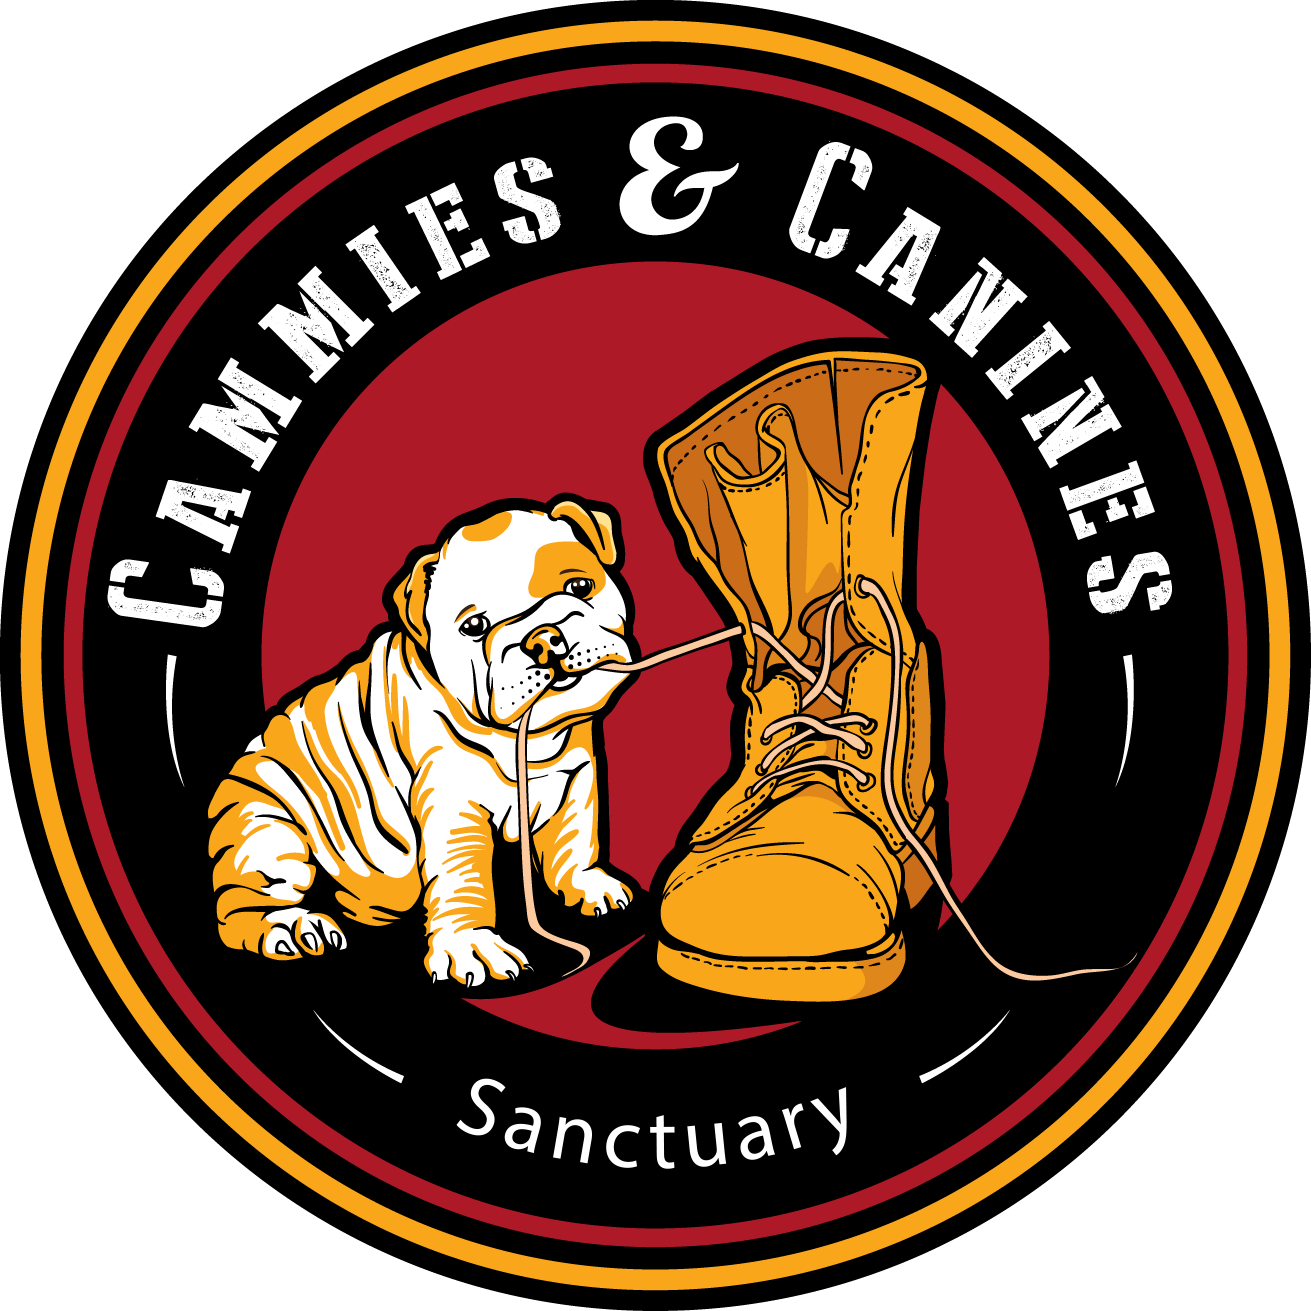 Cammies & Canines Sanctuary